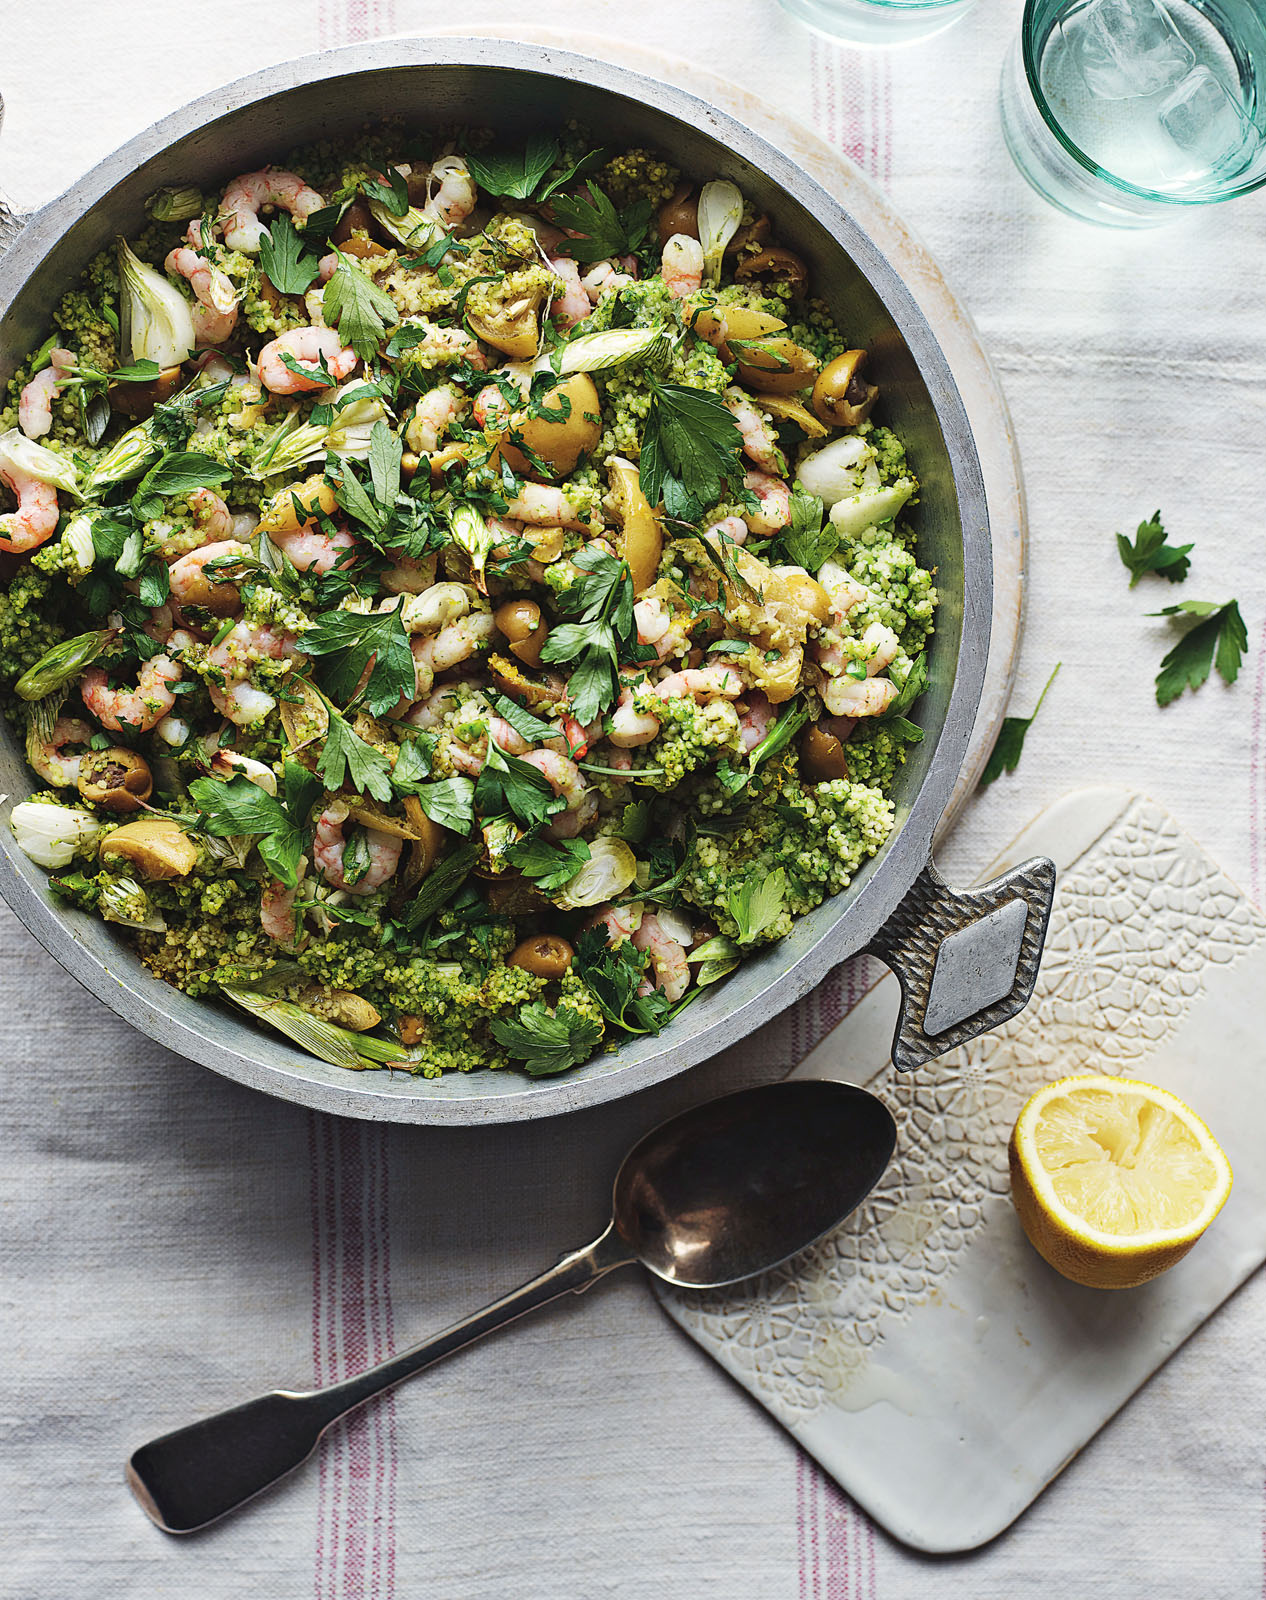 Green couscous with prawns recipe from Roasting Pan Suppers by Rosie Sykes